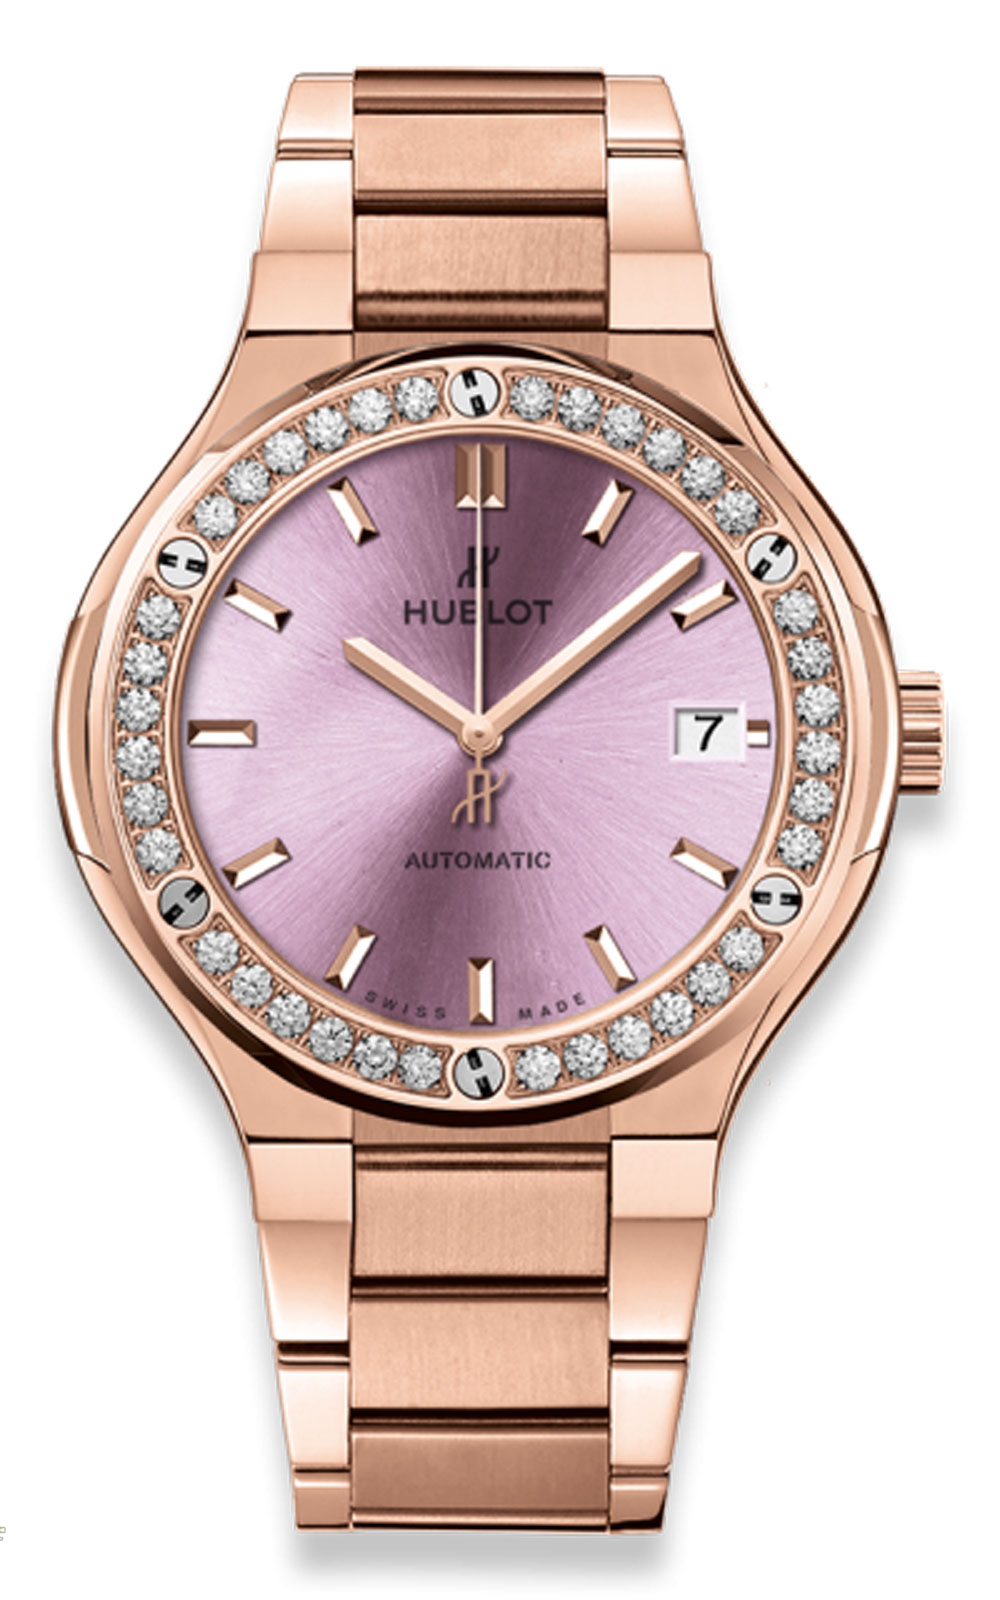 Đồng hồ Hublot Classic Fusion Automatic King Gold Pink 38 mm – 568.OX.891P.OX.1204